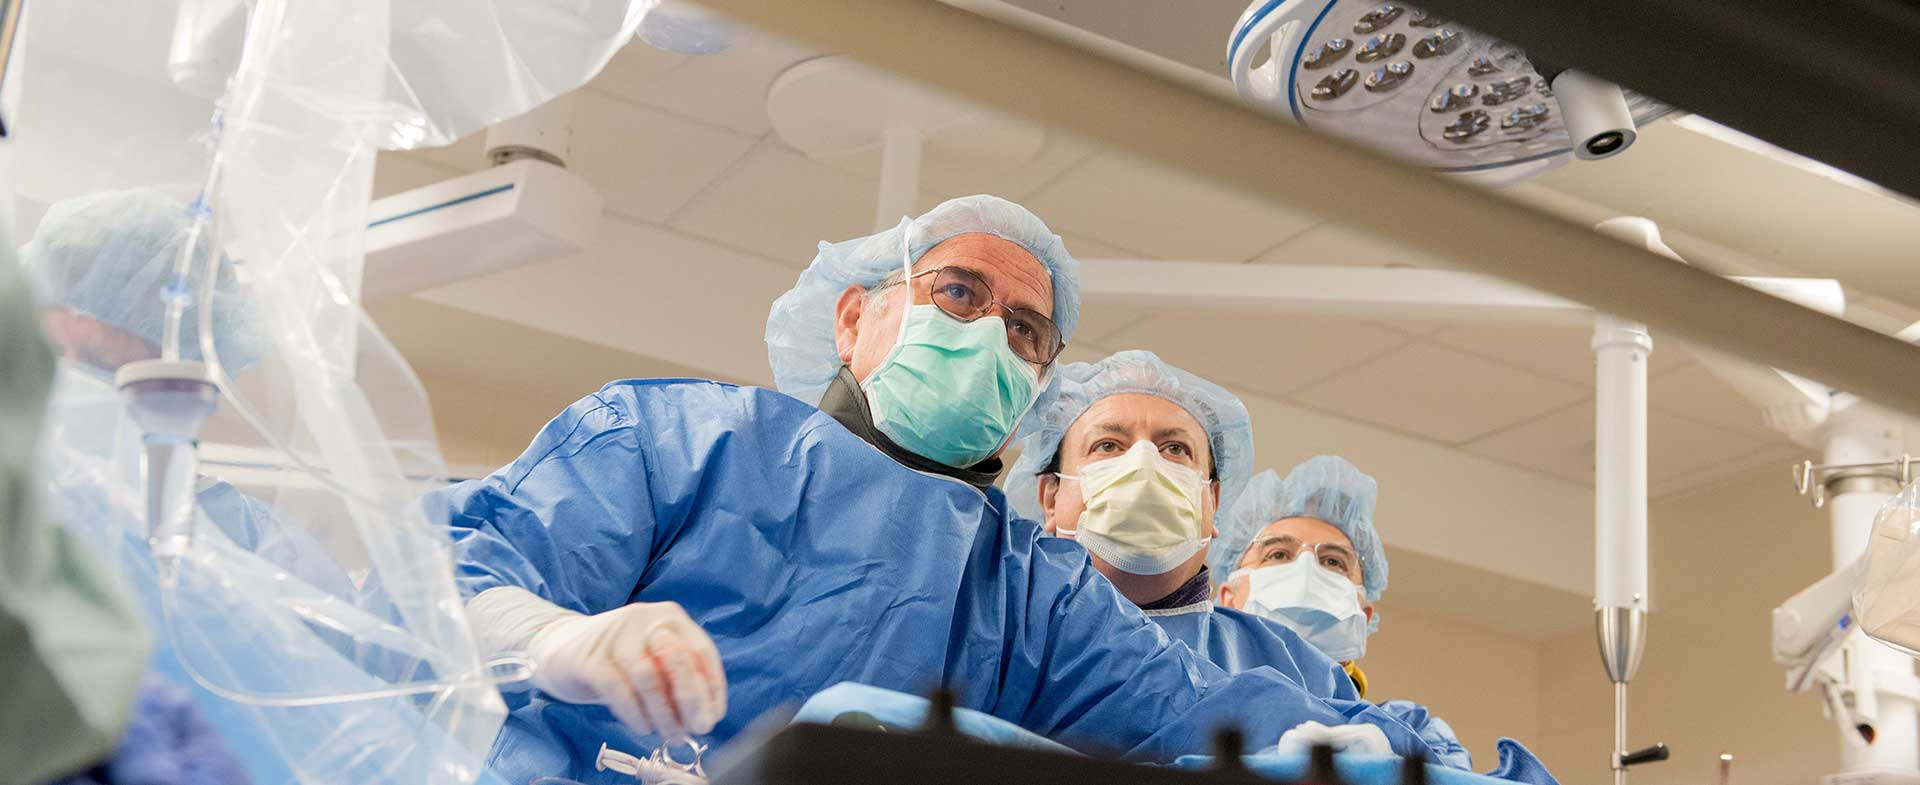 Dr. WIlliam O'Neill and team perform a transcatheter aortic valve replacement or TAVR